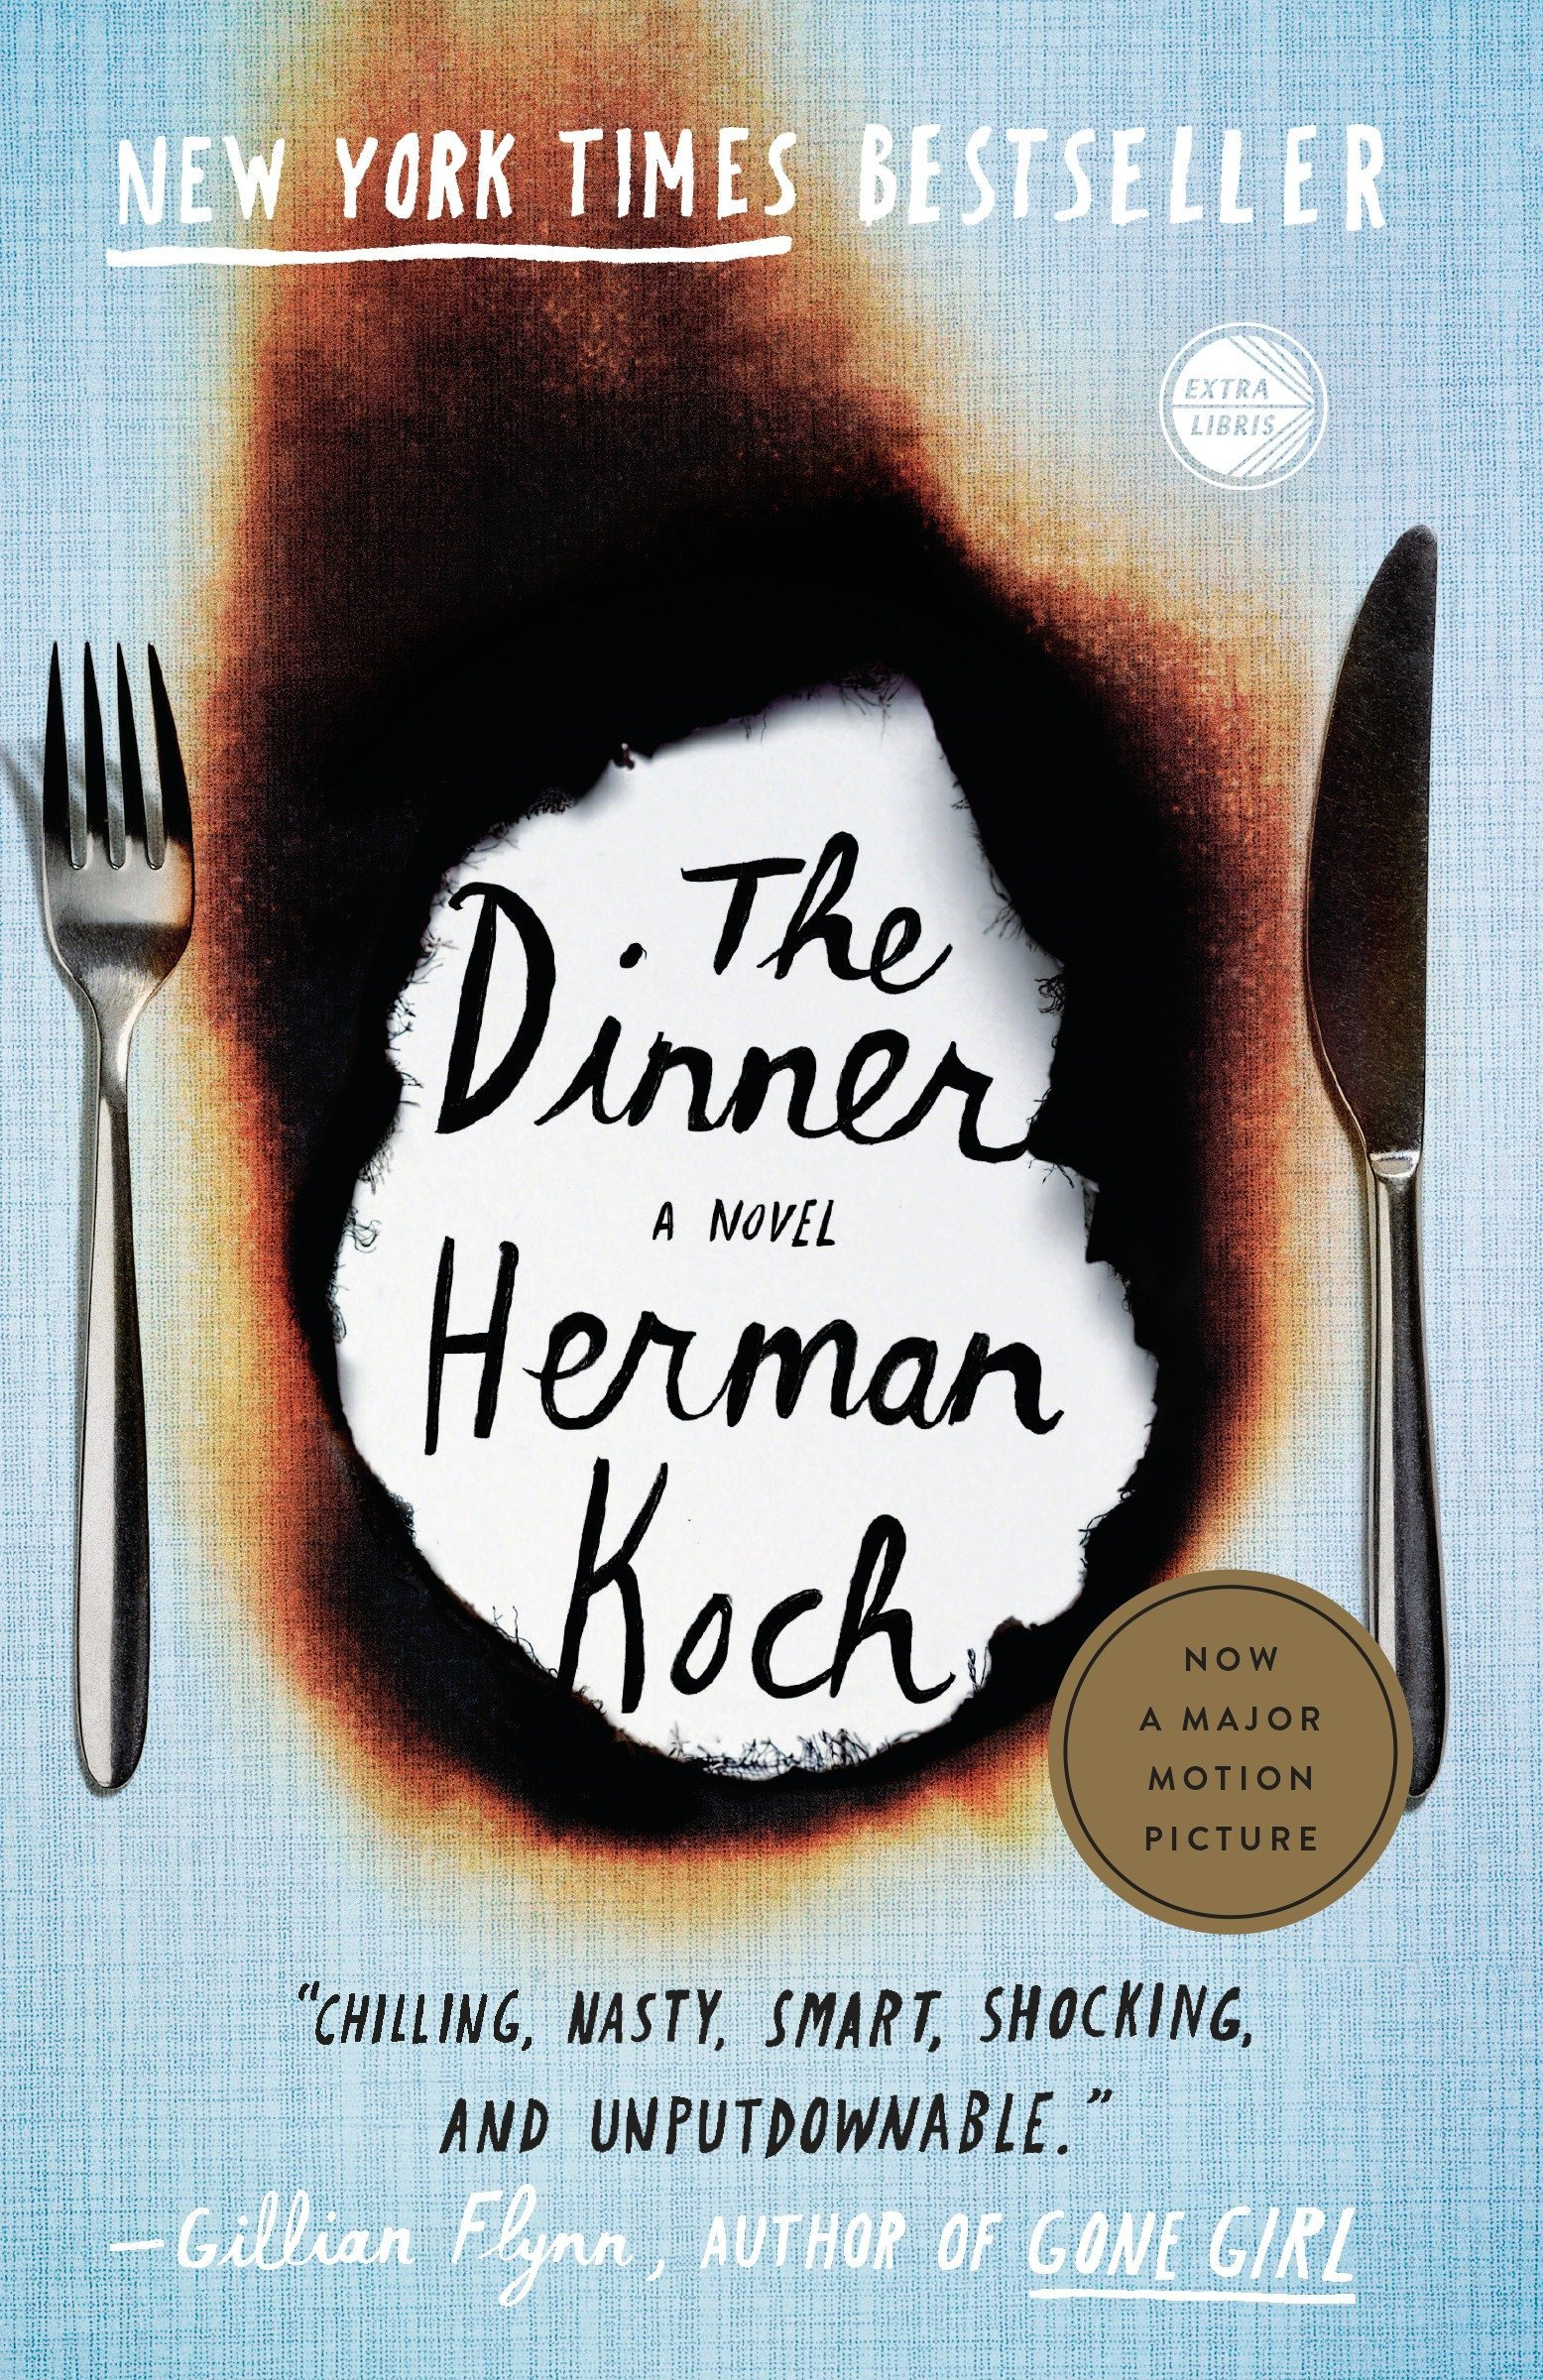 Image result for the dinner herman koch book cover